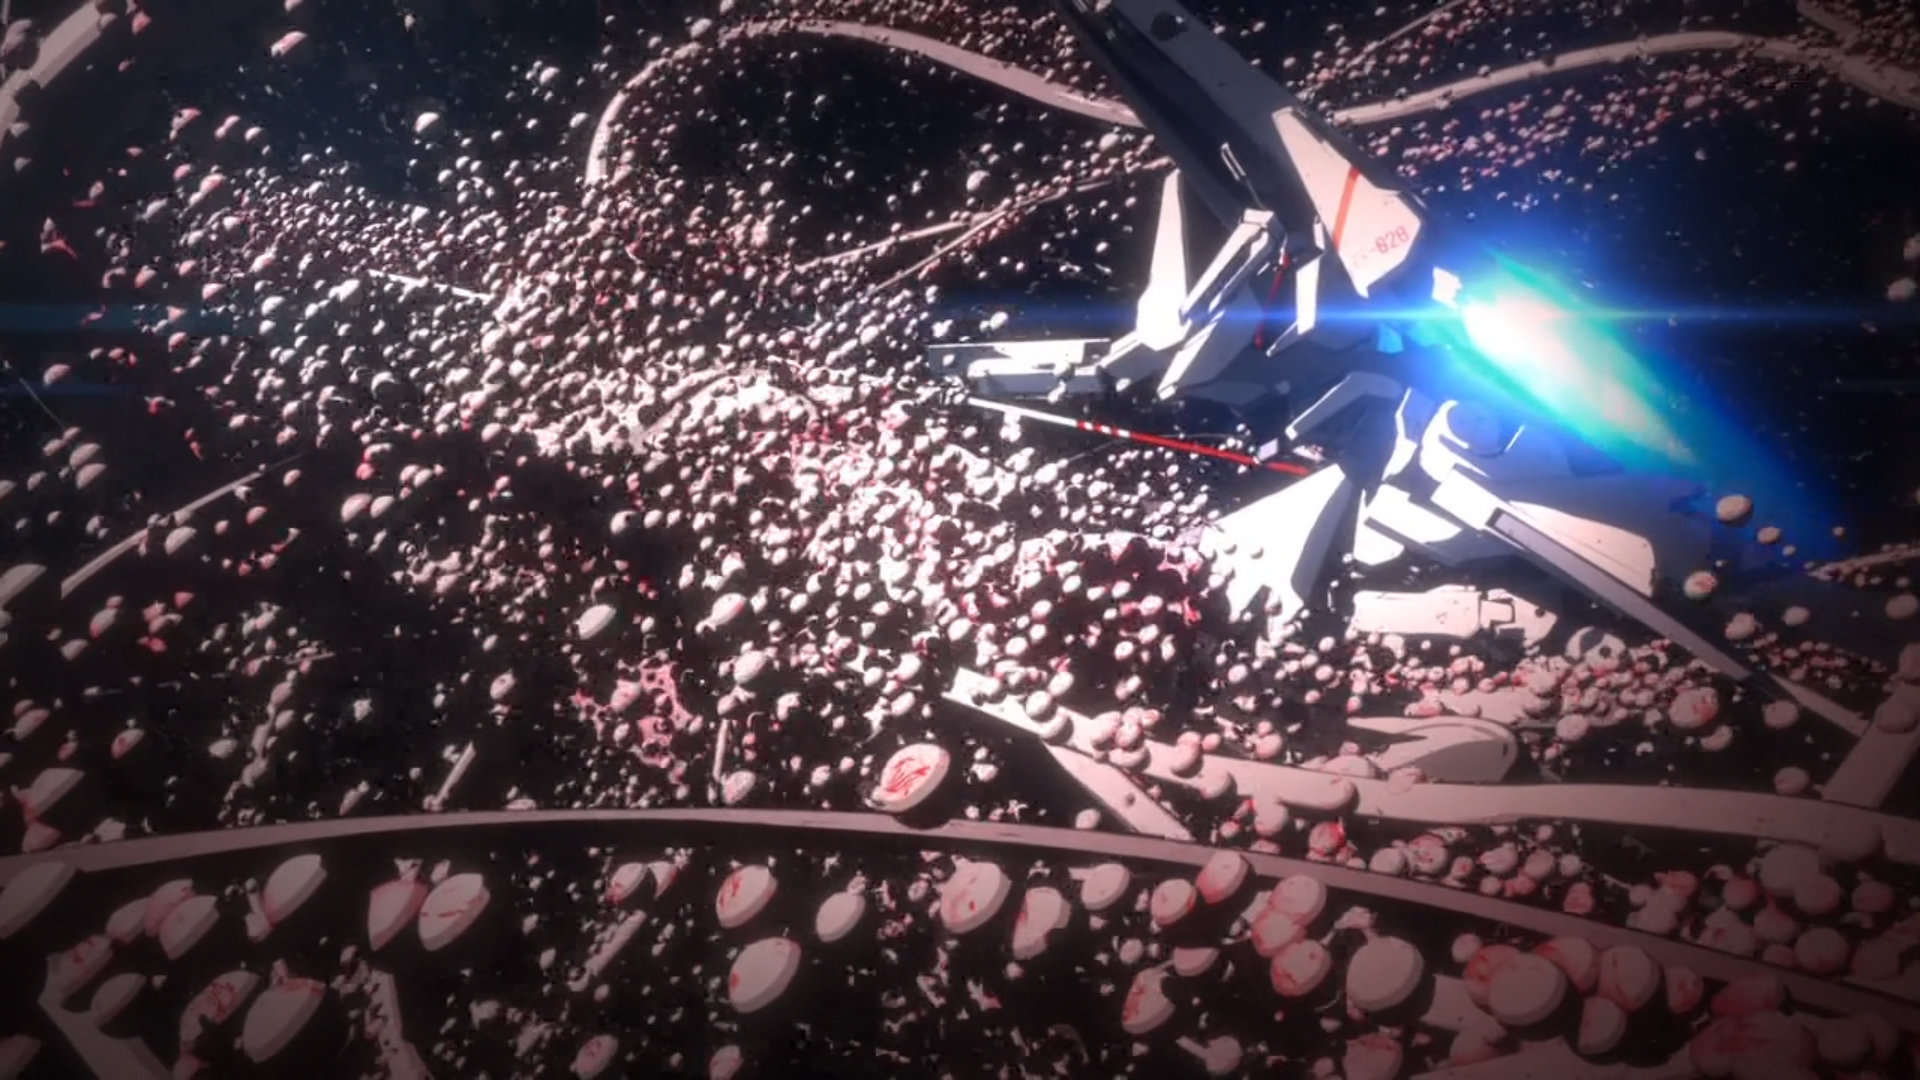 Download full hd Knights Of Sidonia PC background ID:294853 for free